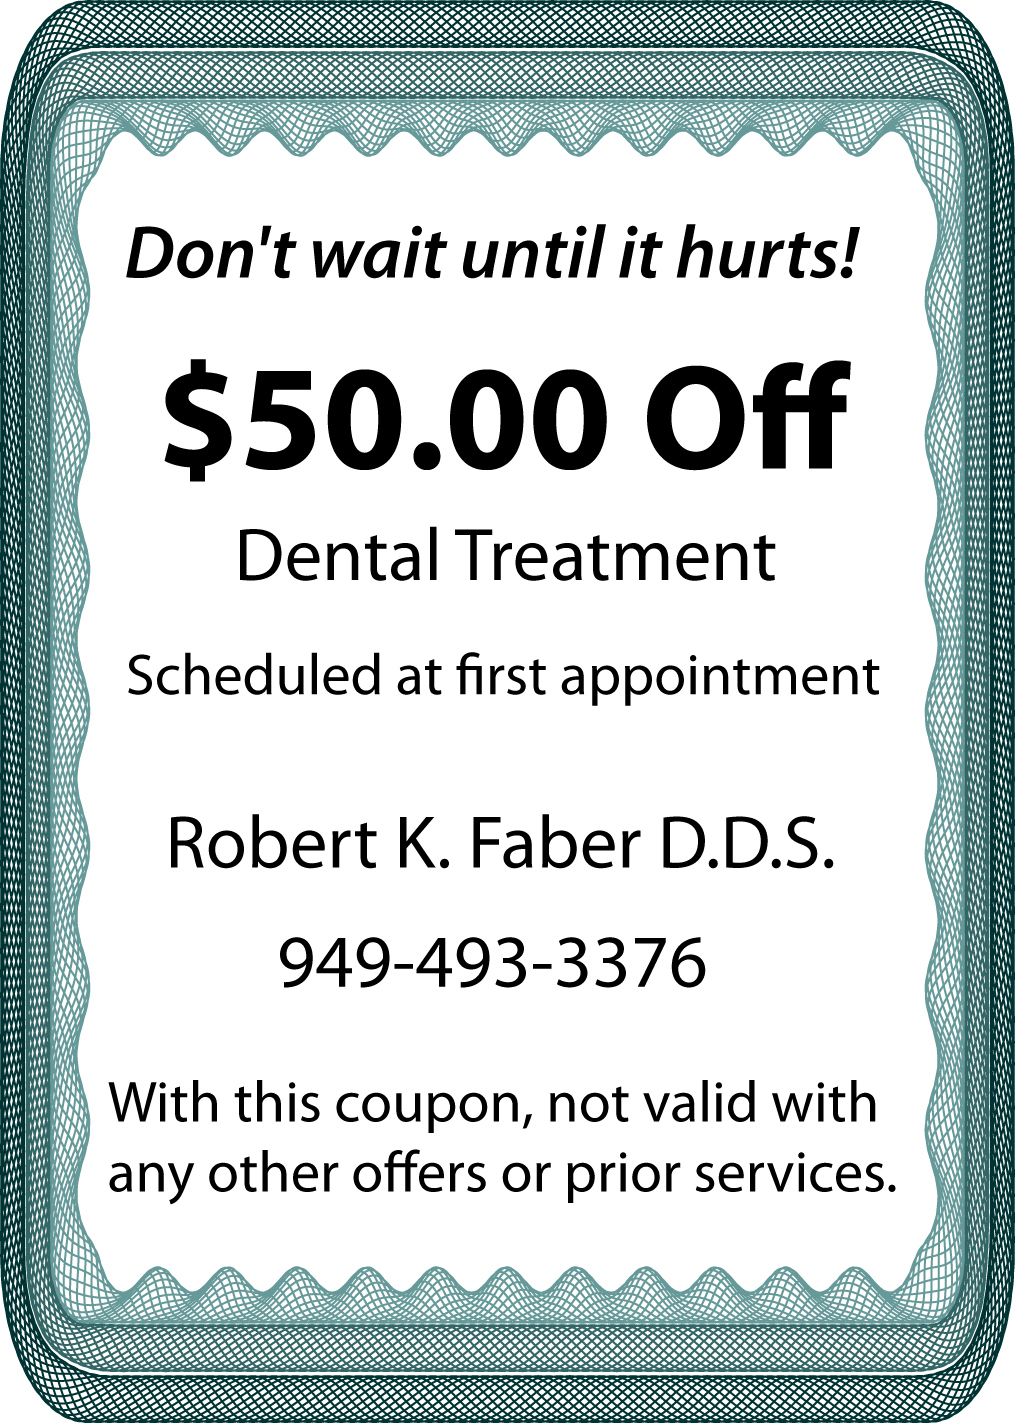 discount for dental treatment in san juan capistrano